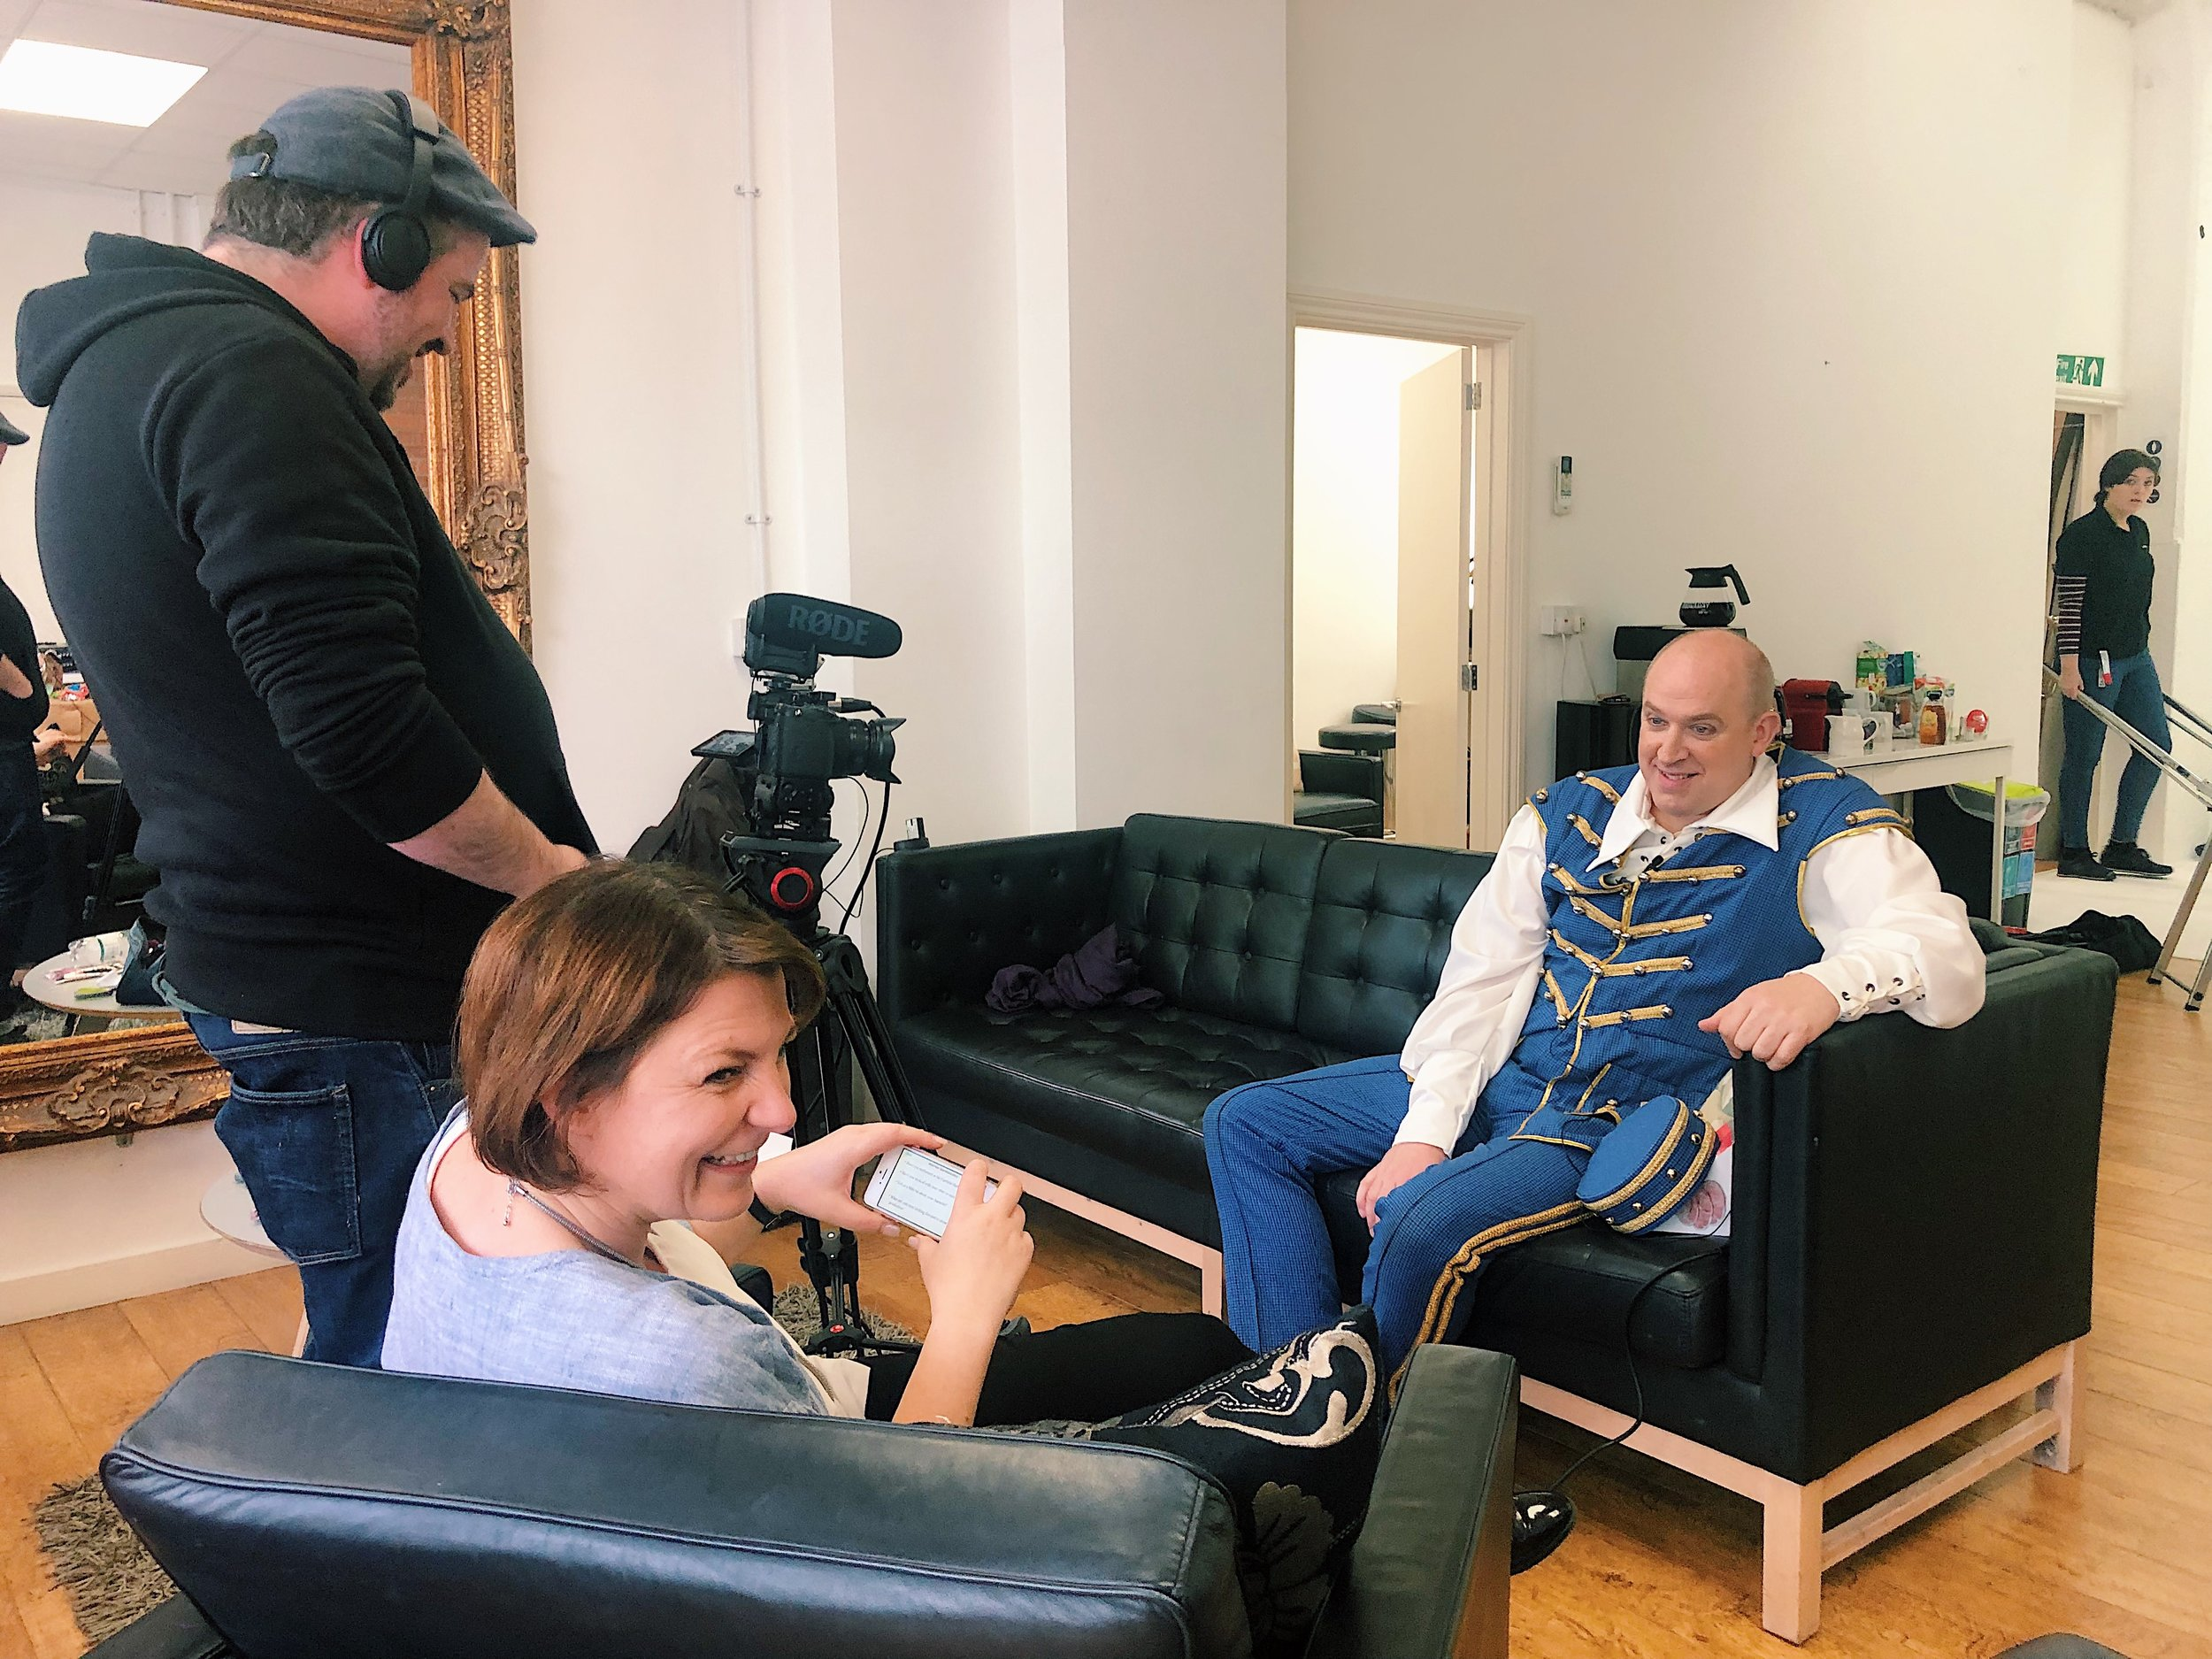 Tim Vine has Videographer Ben and Laura from Imagine in utter hysterics as he's recording his videos. We had to retake it several times as all you could hear was the whole room laughing out loud behind him!